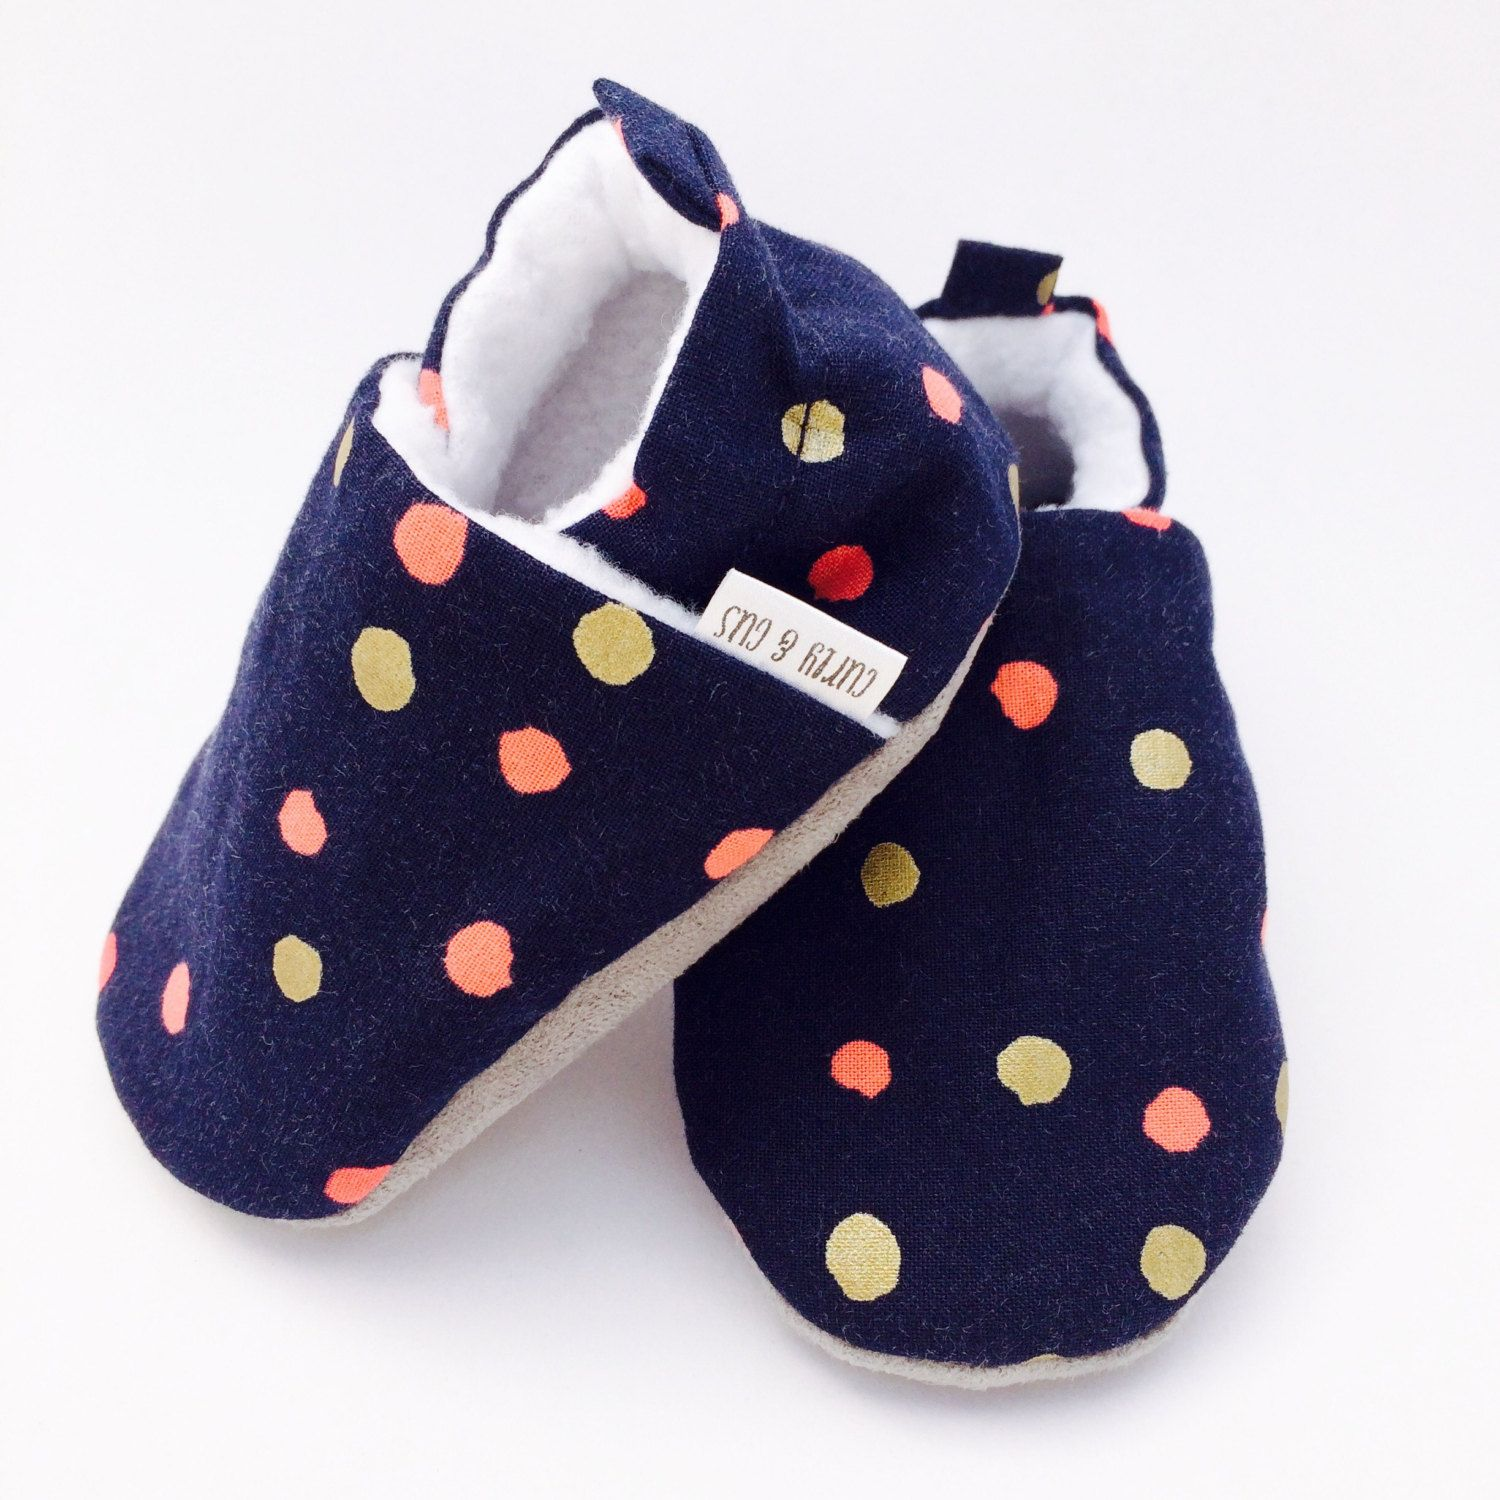 Polka Dot Baby Shoes Pink and Gold Dot Soft Soled Baby Shoes Navy